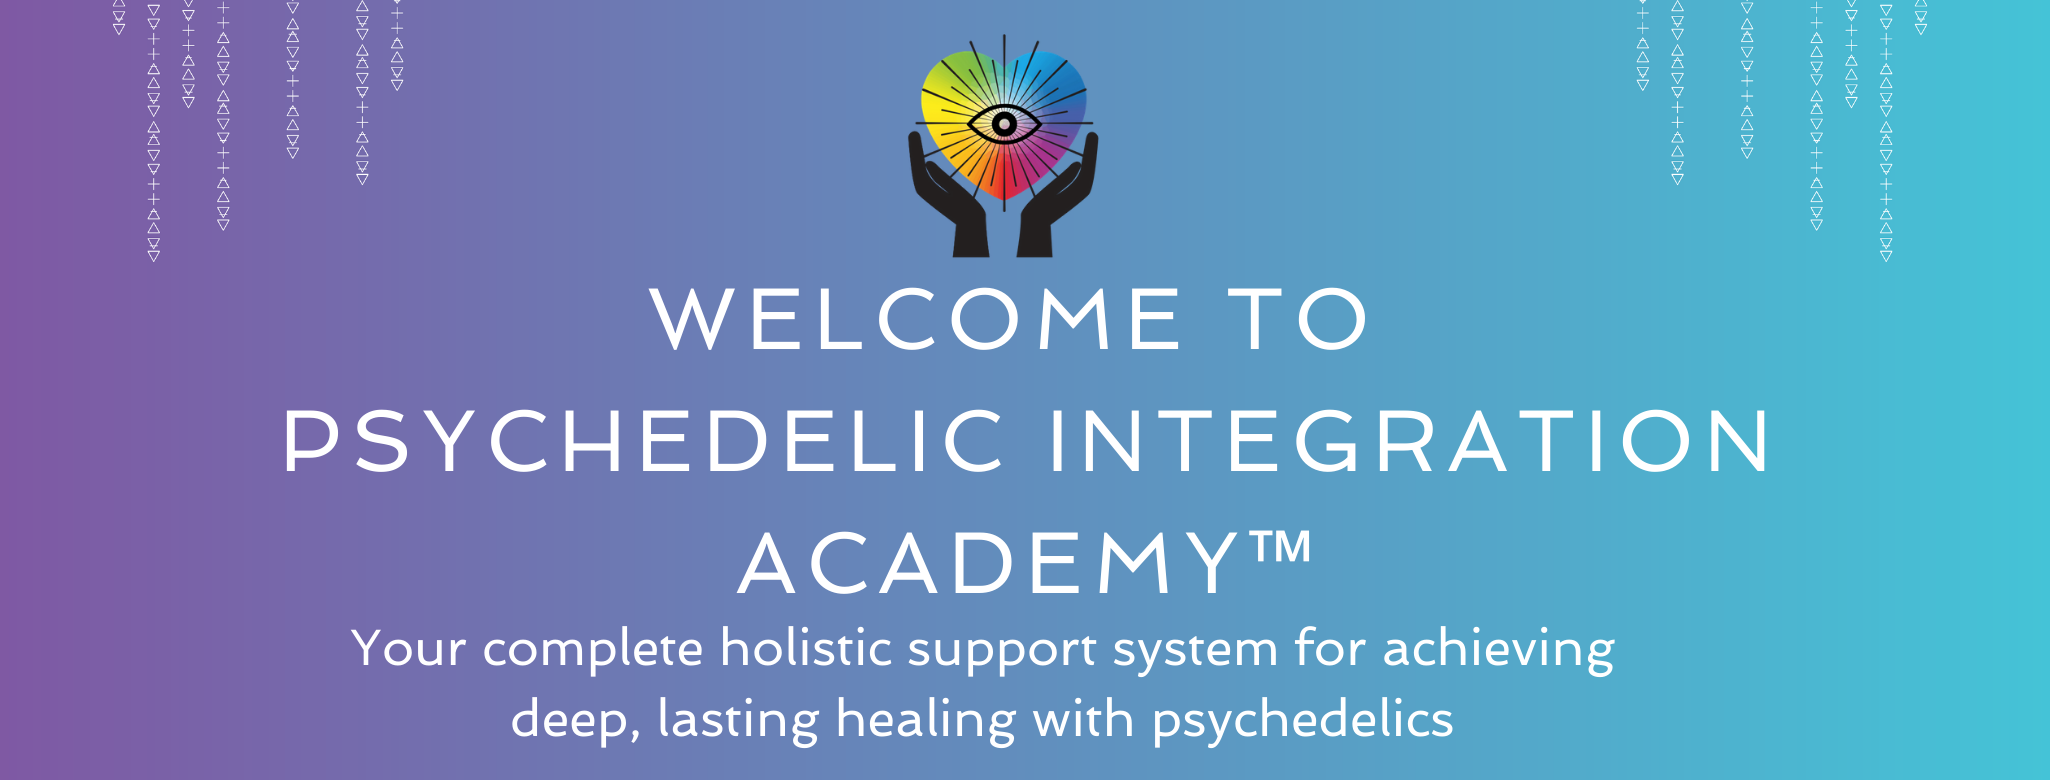 psychedelic integration academy